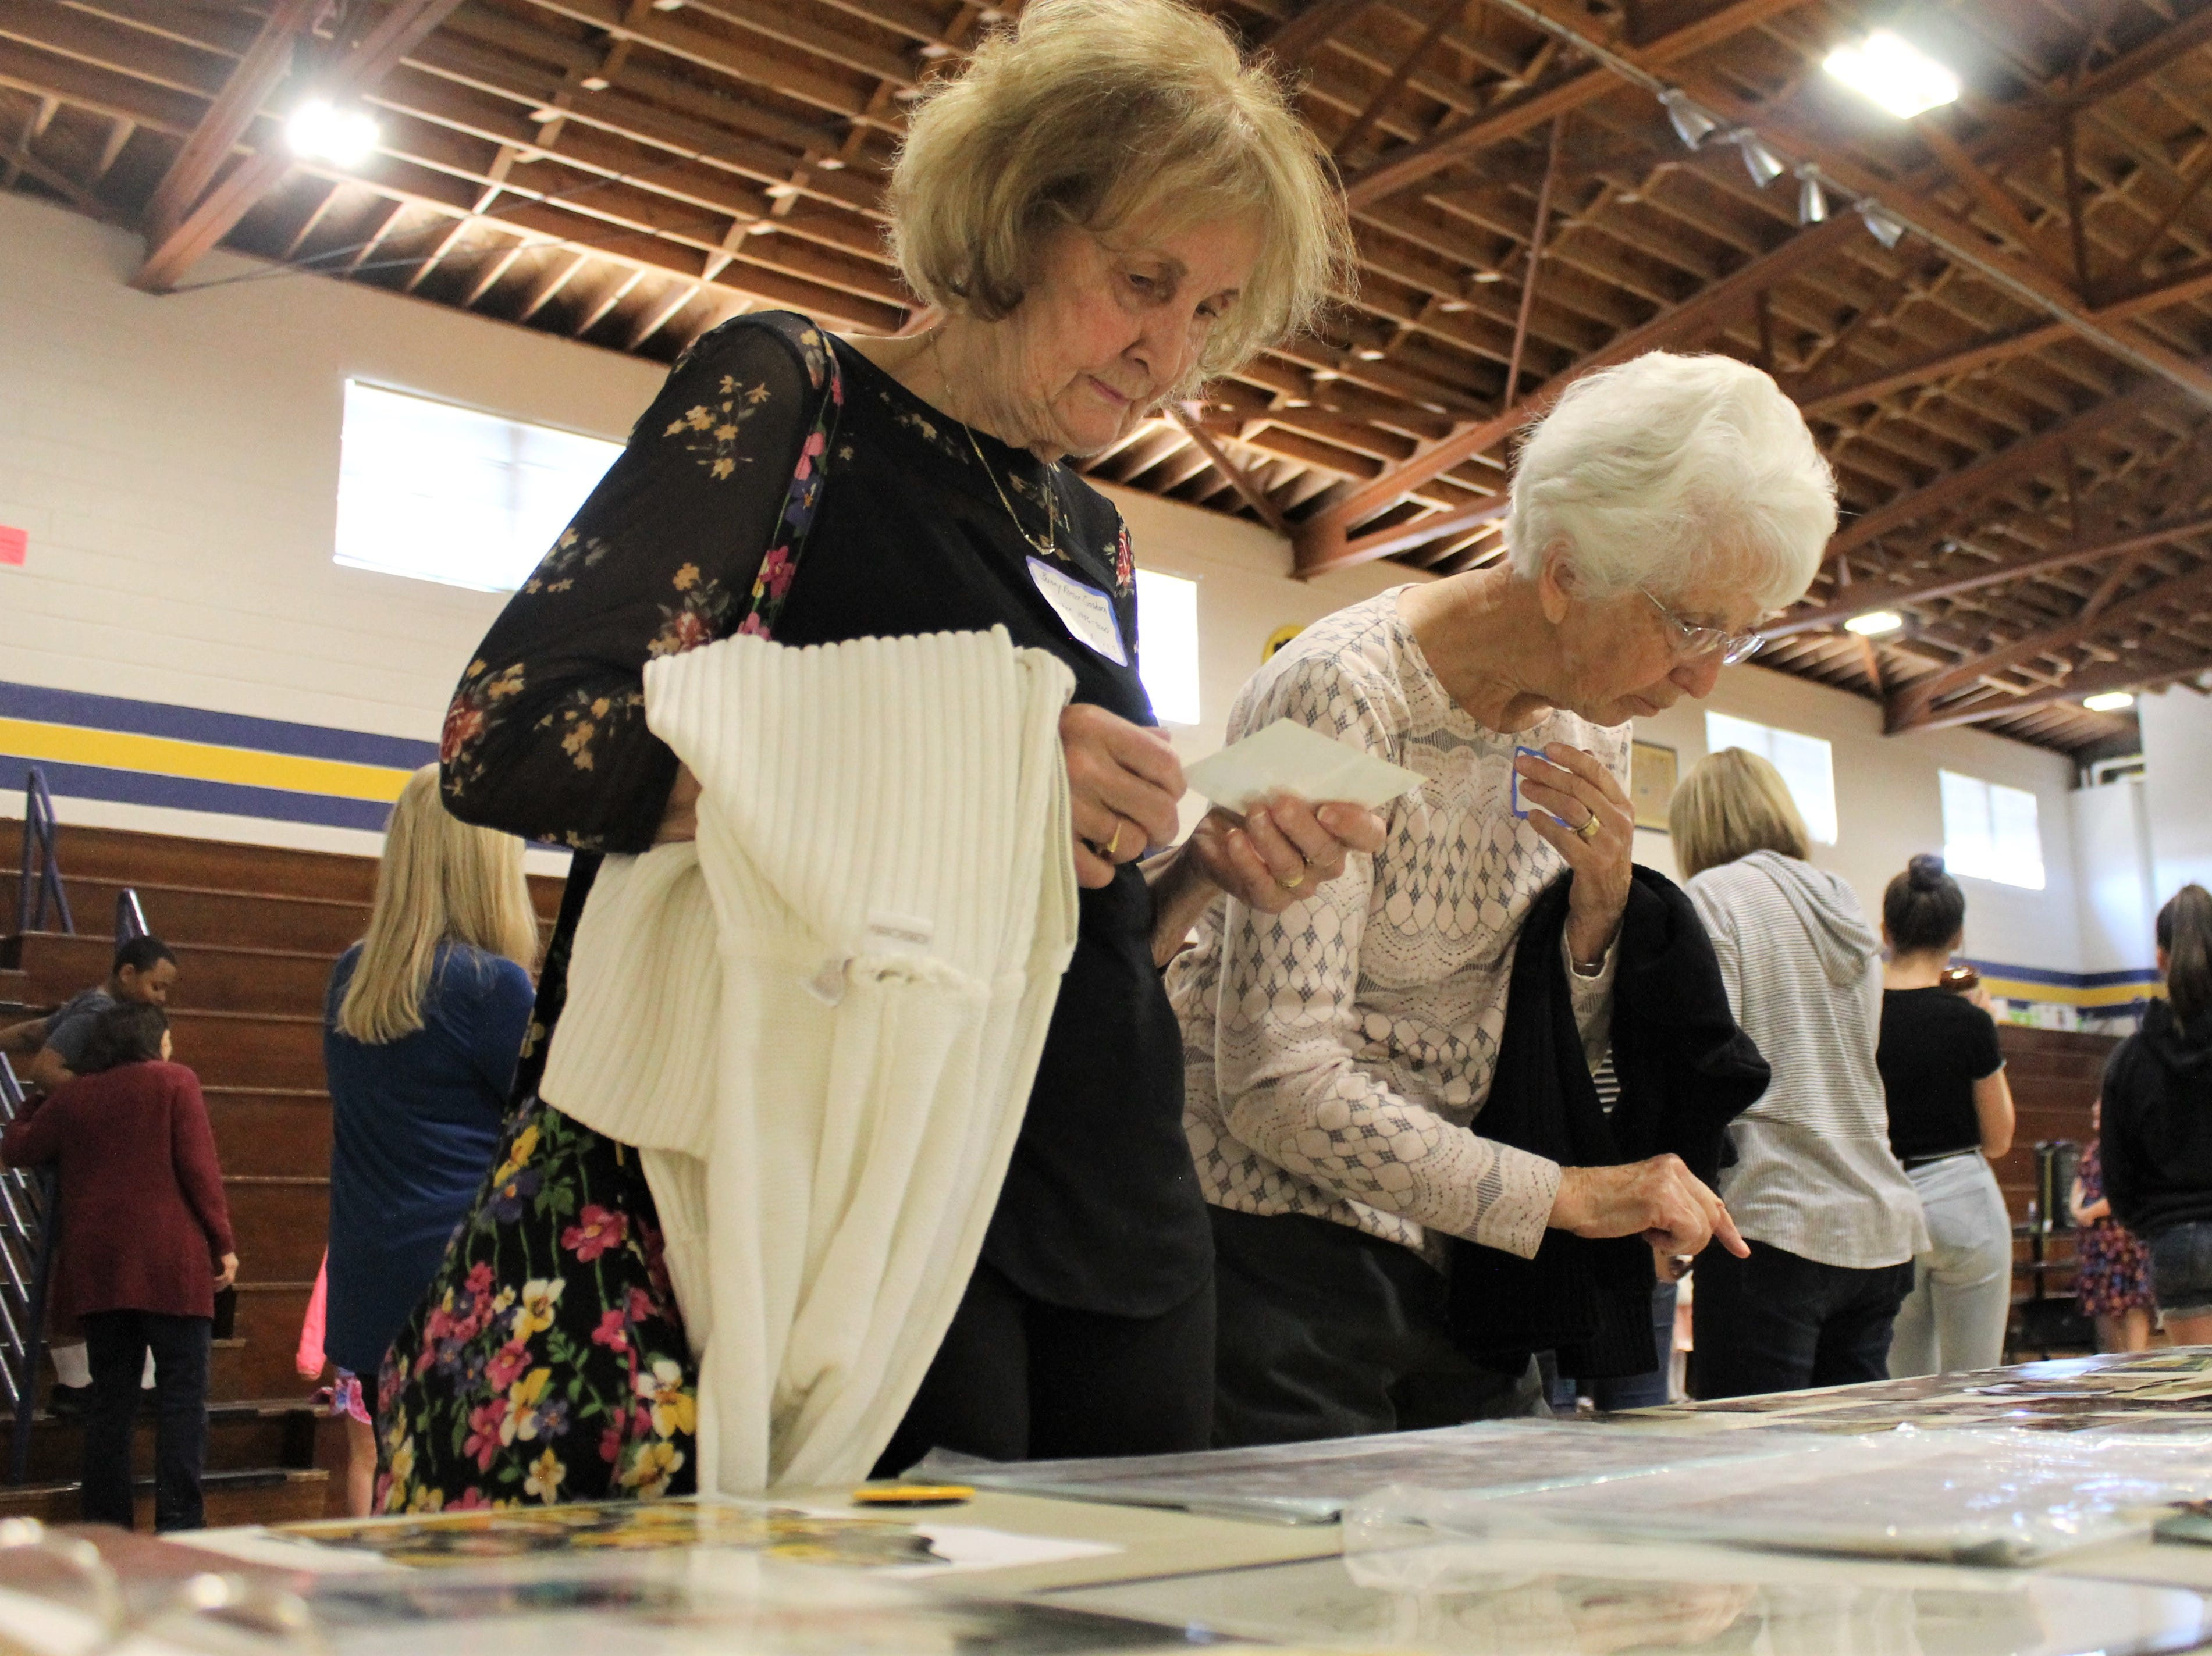 Bunny Roeser Goshorn and Ann Hitchman look through photos at Timnath Elementary School's 100th anniversary celebration Saturday, April 27, 2019. Roeser Goshorn taught at the school from 1976-2000. Hitchman taught from 1982-2000.